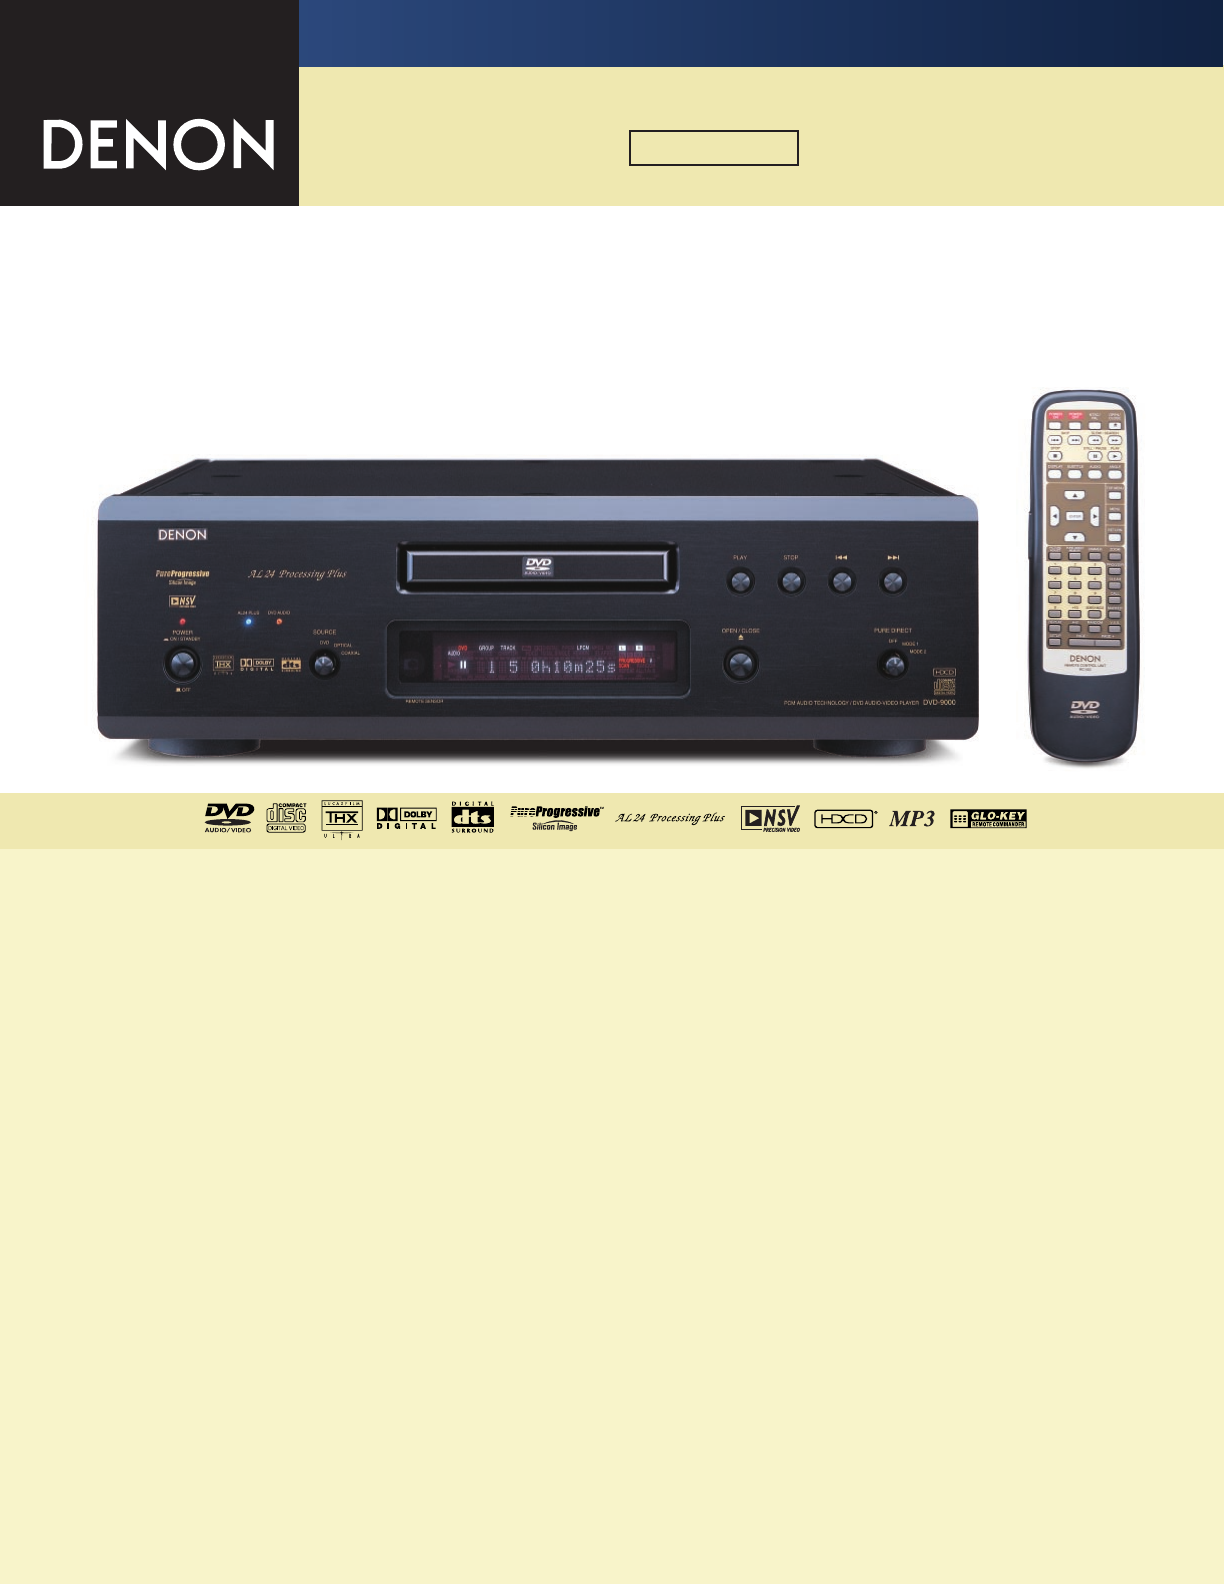 Denon DVD-9000 DVD Player User Manual